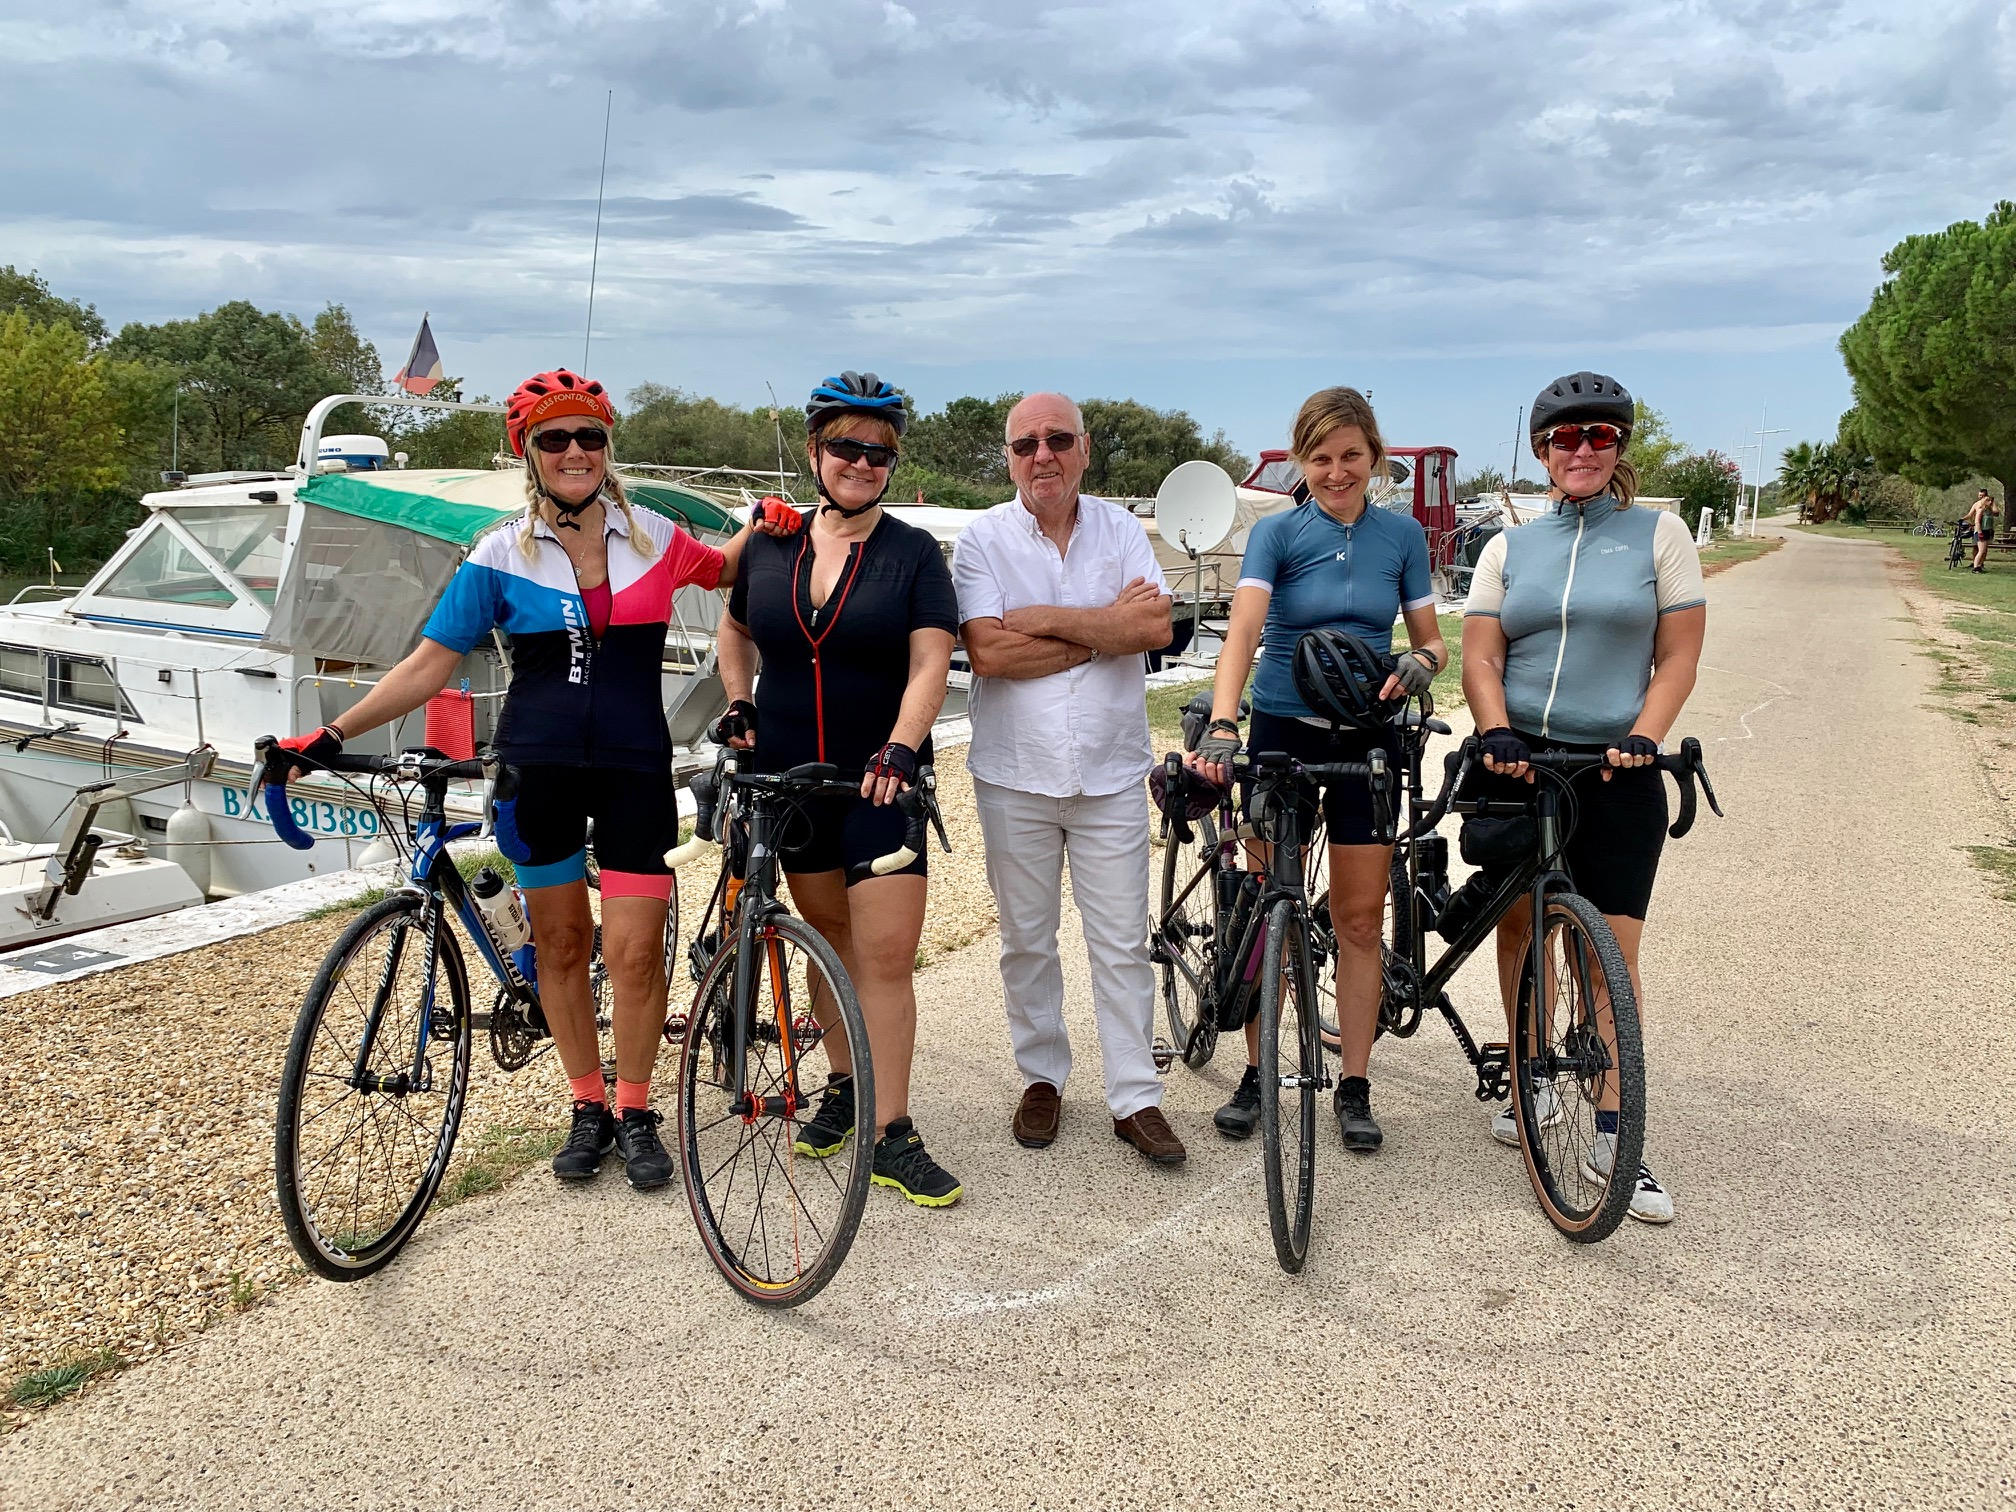 ride rapha women's 100 port petite camargue